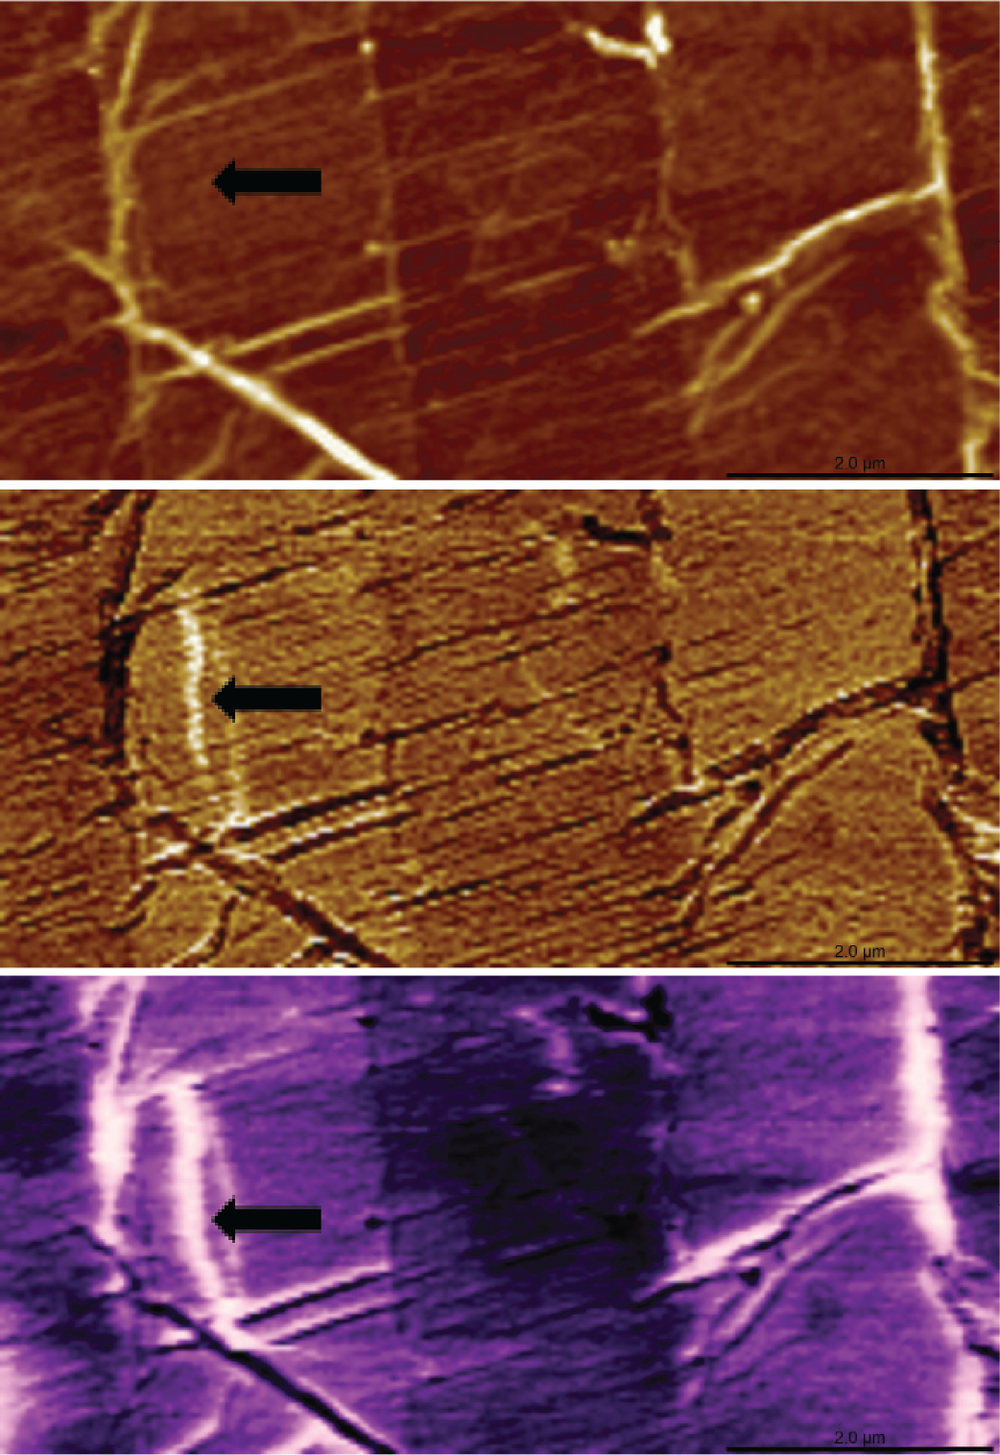 (1) 7.5 x 3.5 um PeakForce-KPFM scan (Bruker, Multimode 8) of graphene folds on a silicon substrate with Adama 80 N/m Super Sharp probe. A bright vertical band is visible in both the adhesion (Middle) and surface potential (Bottom) images but not topography (Top). The higher surface potential may be attributed to weaker bonding between the graphene and the substrate in this region. (Sample: Georg Duesberg, Trinity College Dublin).